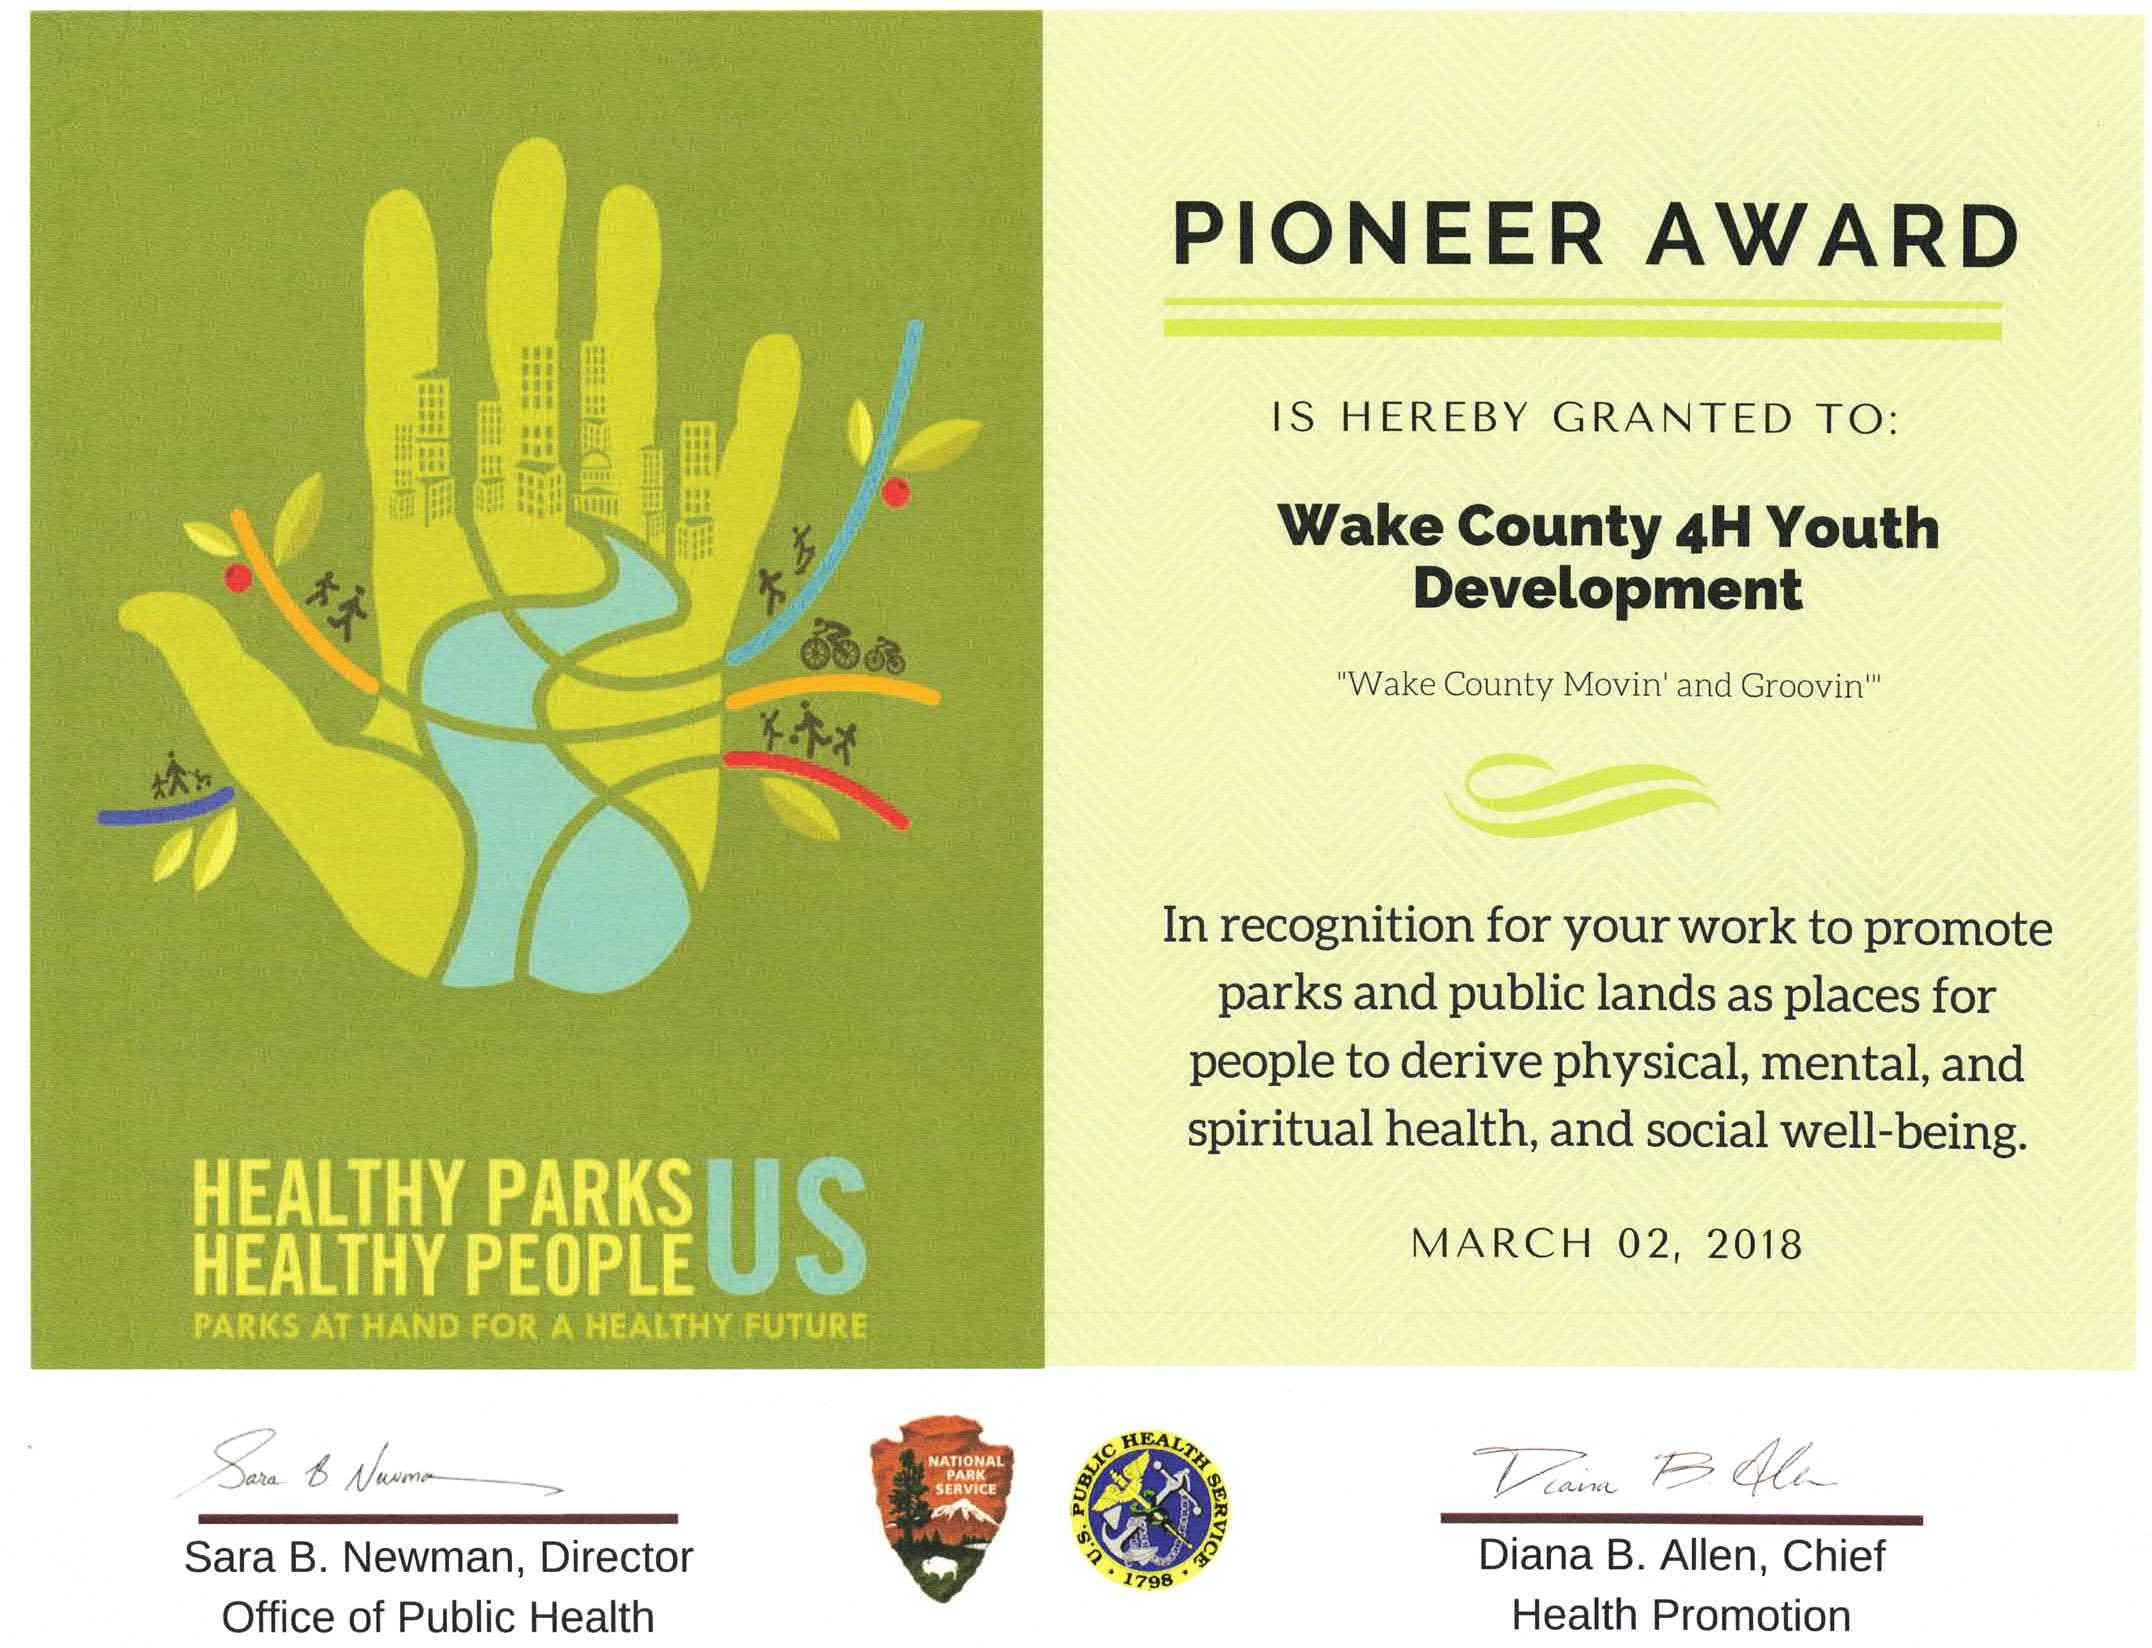 Pioneer Award flyer image